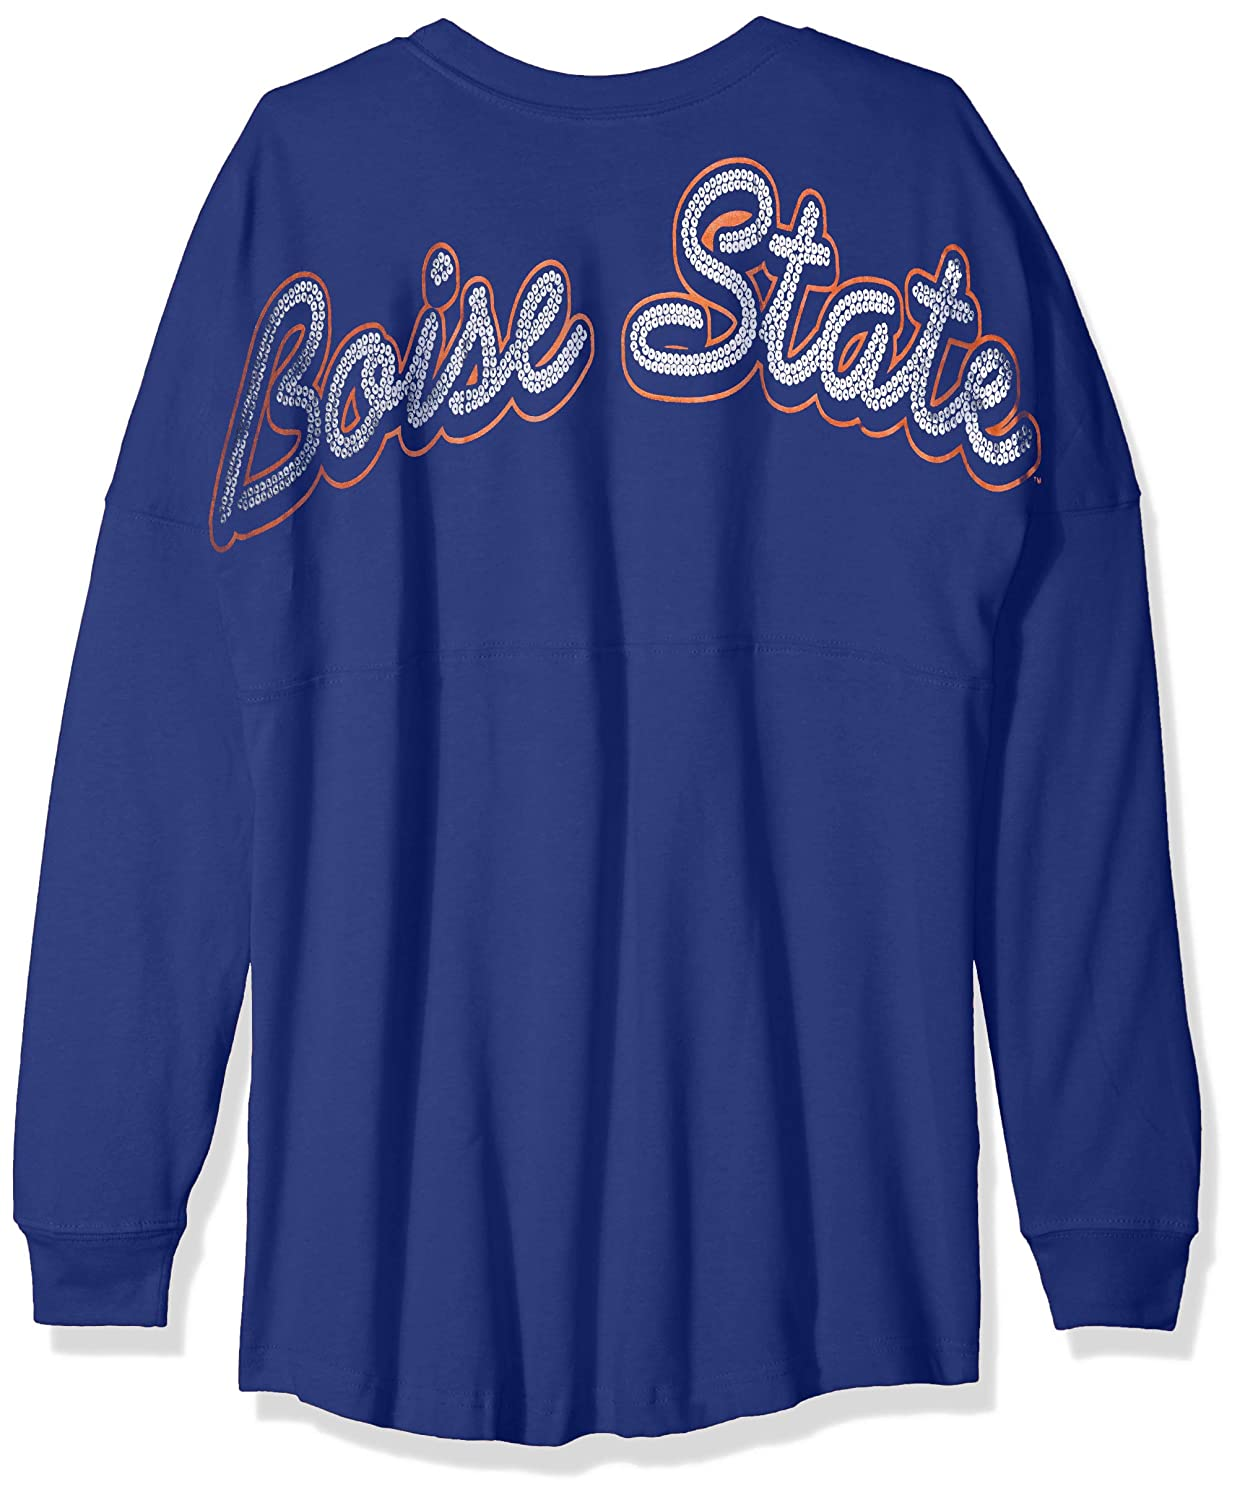 New Royal Medium NCAA Boise State Broncos Womens NCAA Womens Long Sleeve Mascot Style Teeknights Apparel NCAA Womens Long Sleeve Mascot Style Tee